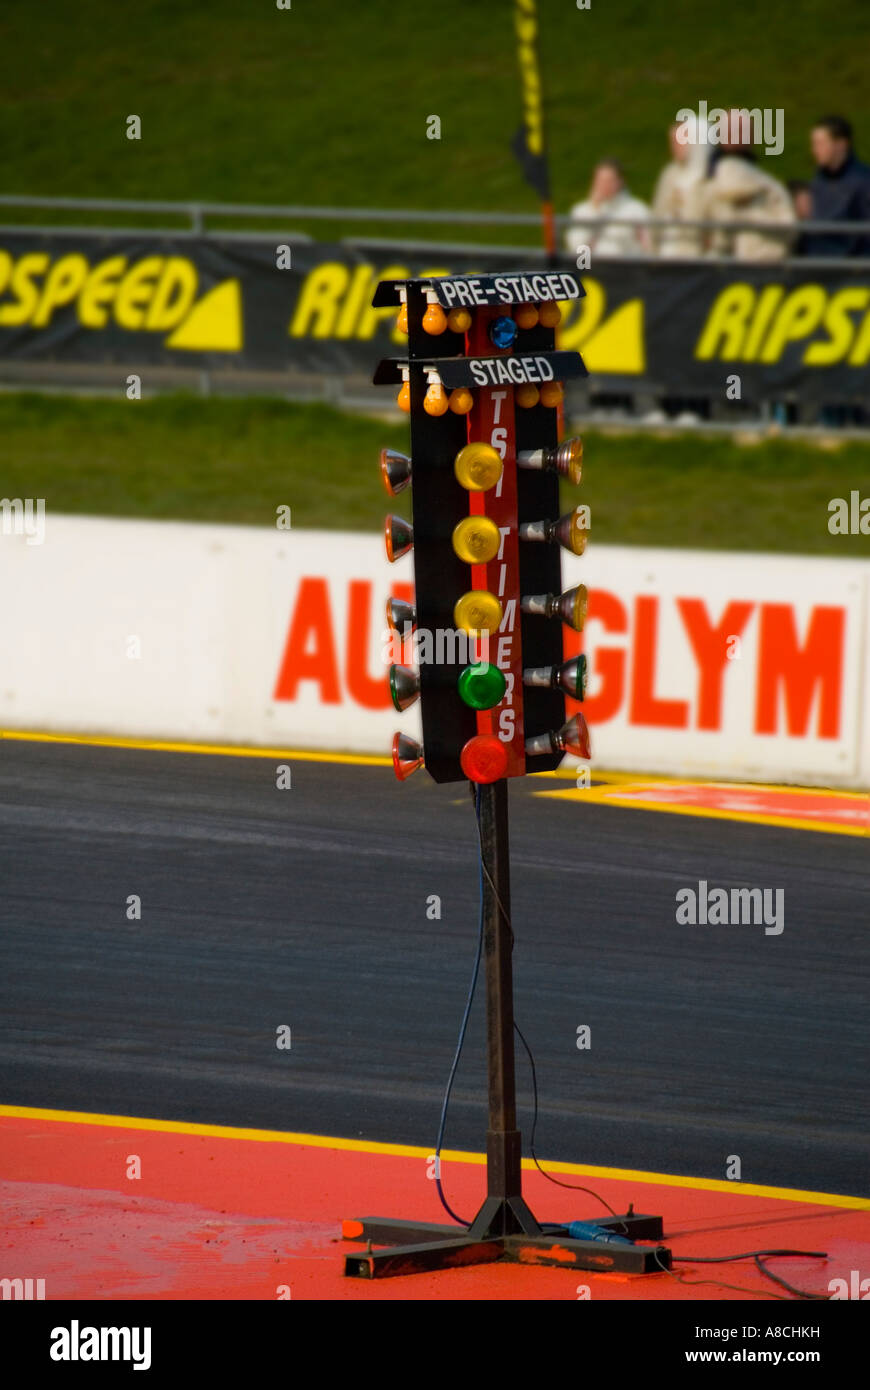 Starting Christmas Tree lights for Drag Racing Stock Photo ...